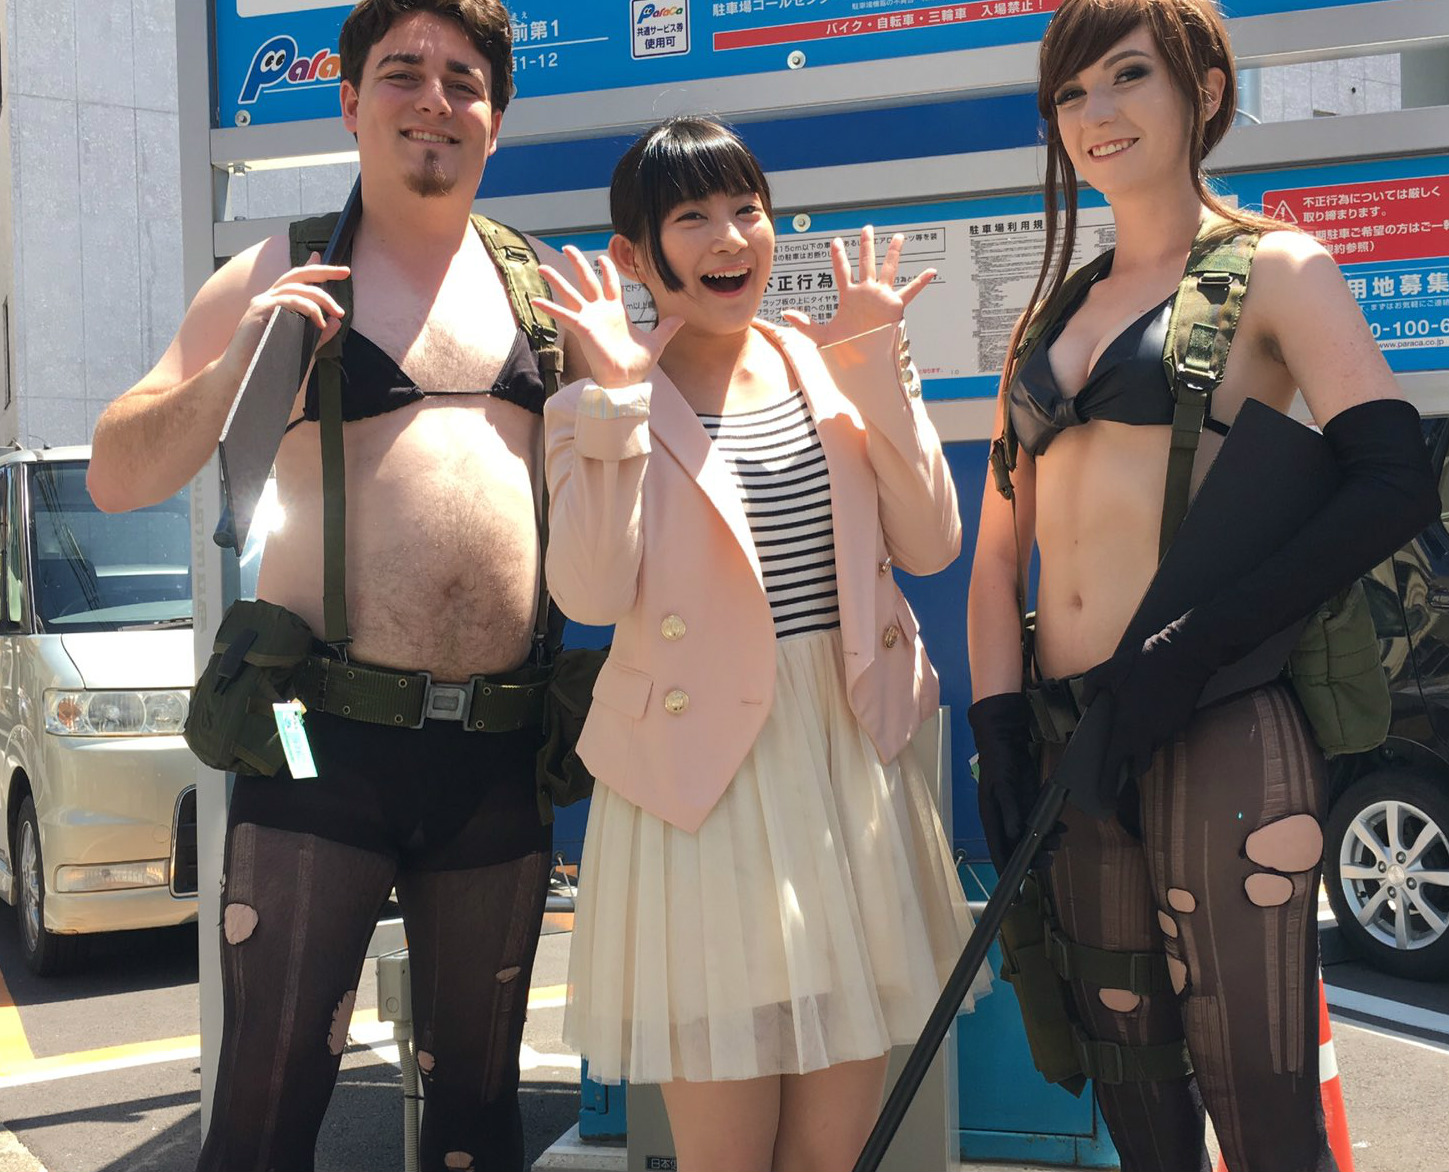 After basically being ousted from Oculus, Palmer Luckey lets loose in Japan screenshot